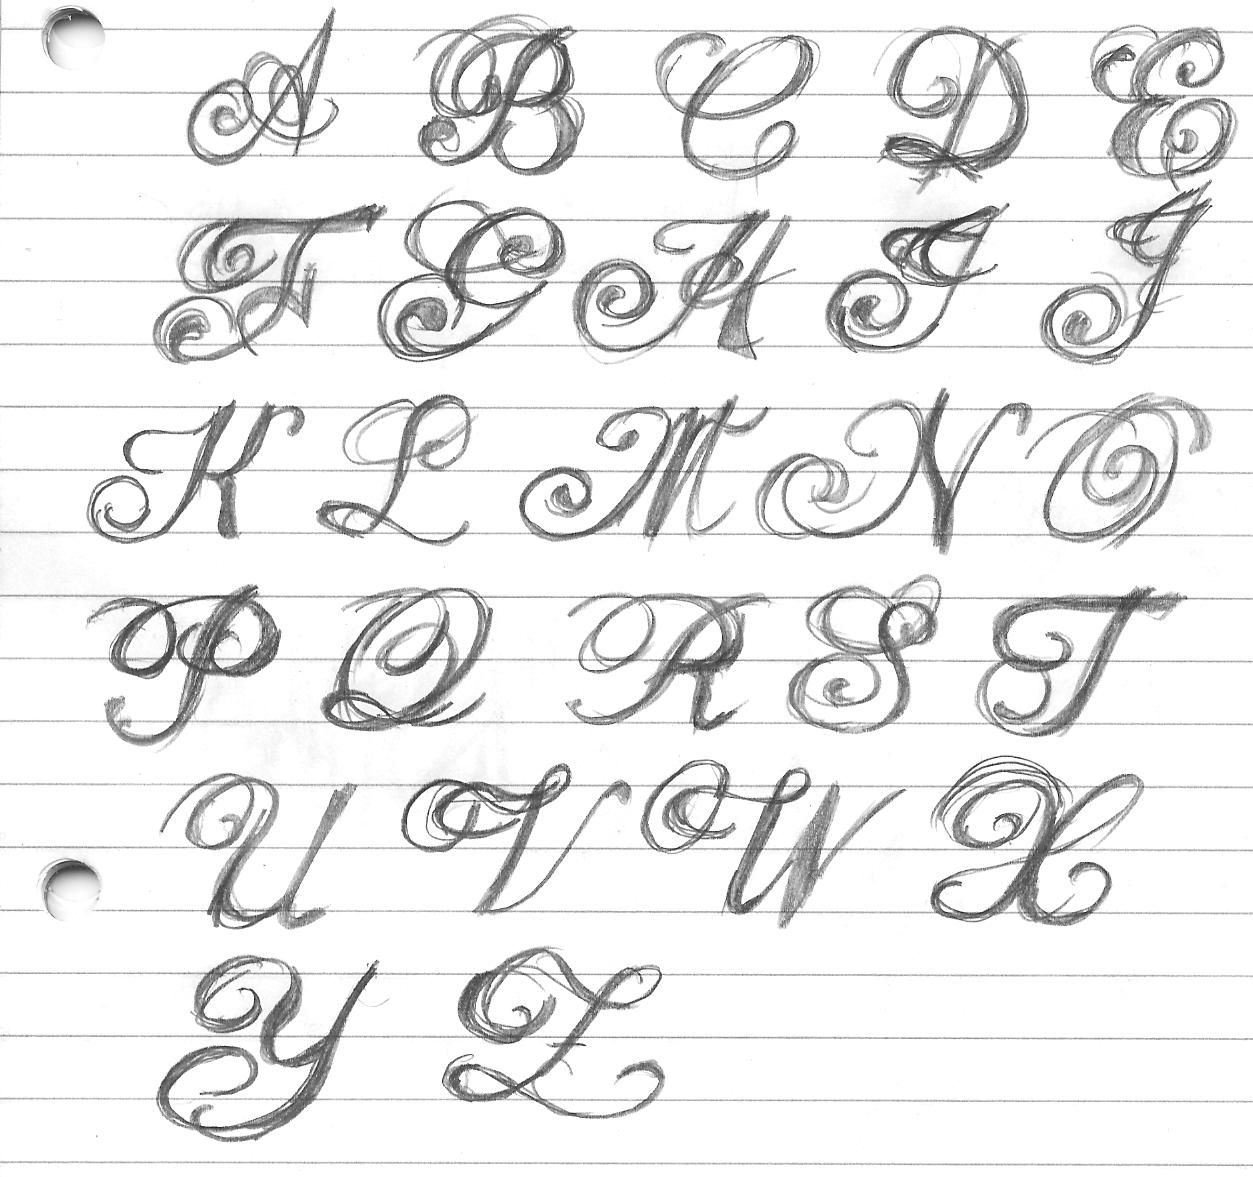 Tattoo finder lettering tattoos letter tattoo for men T in calligraphy